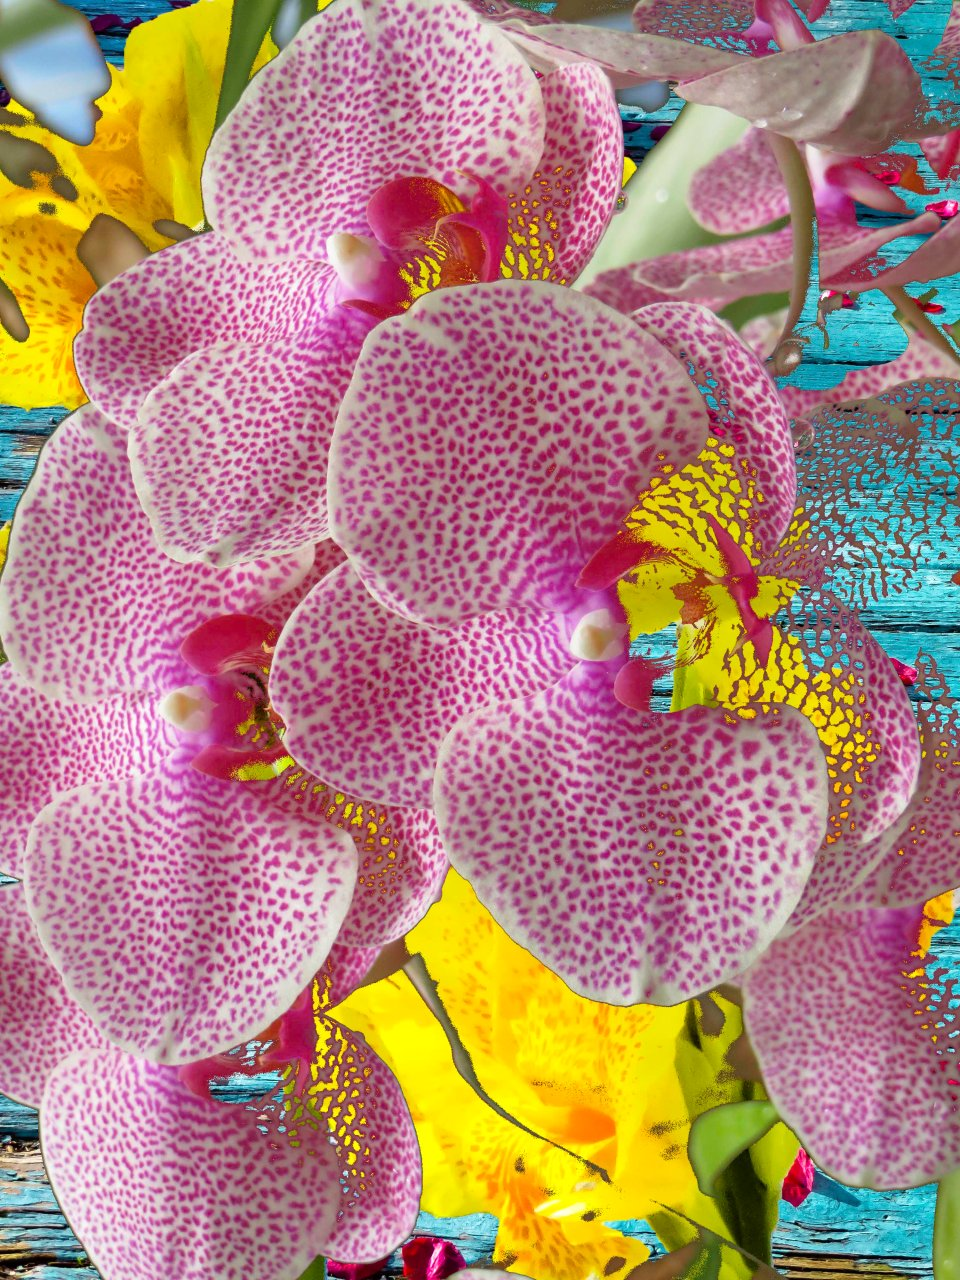 Orchids FLW 6038 fdpbzq.jpg